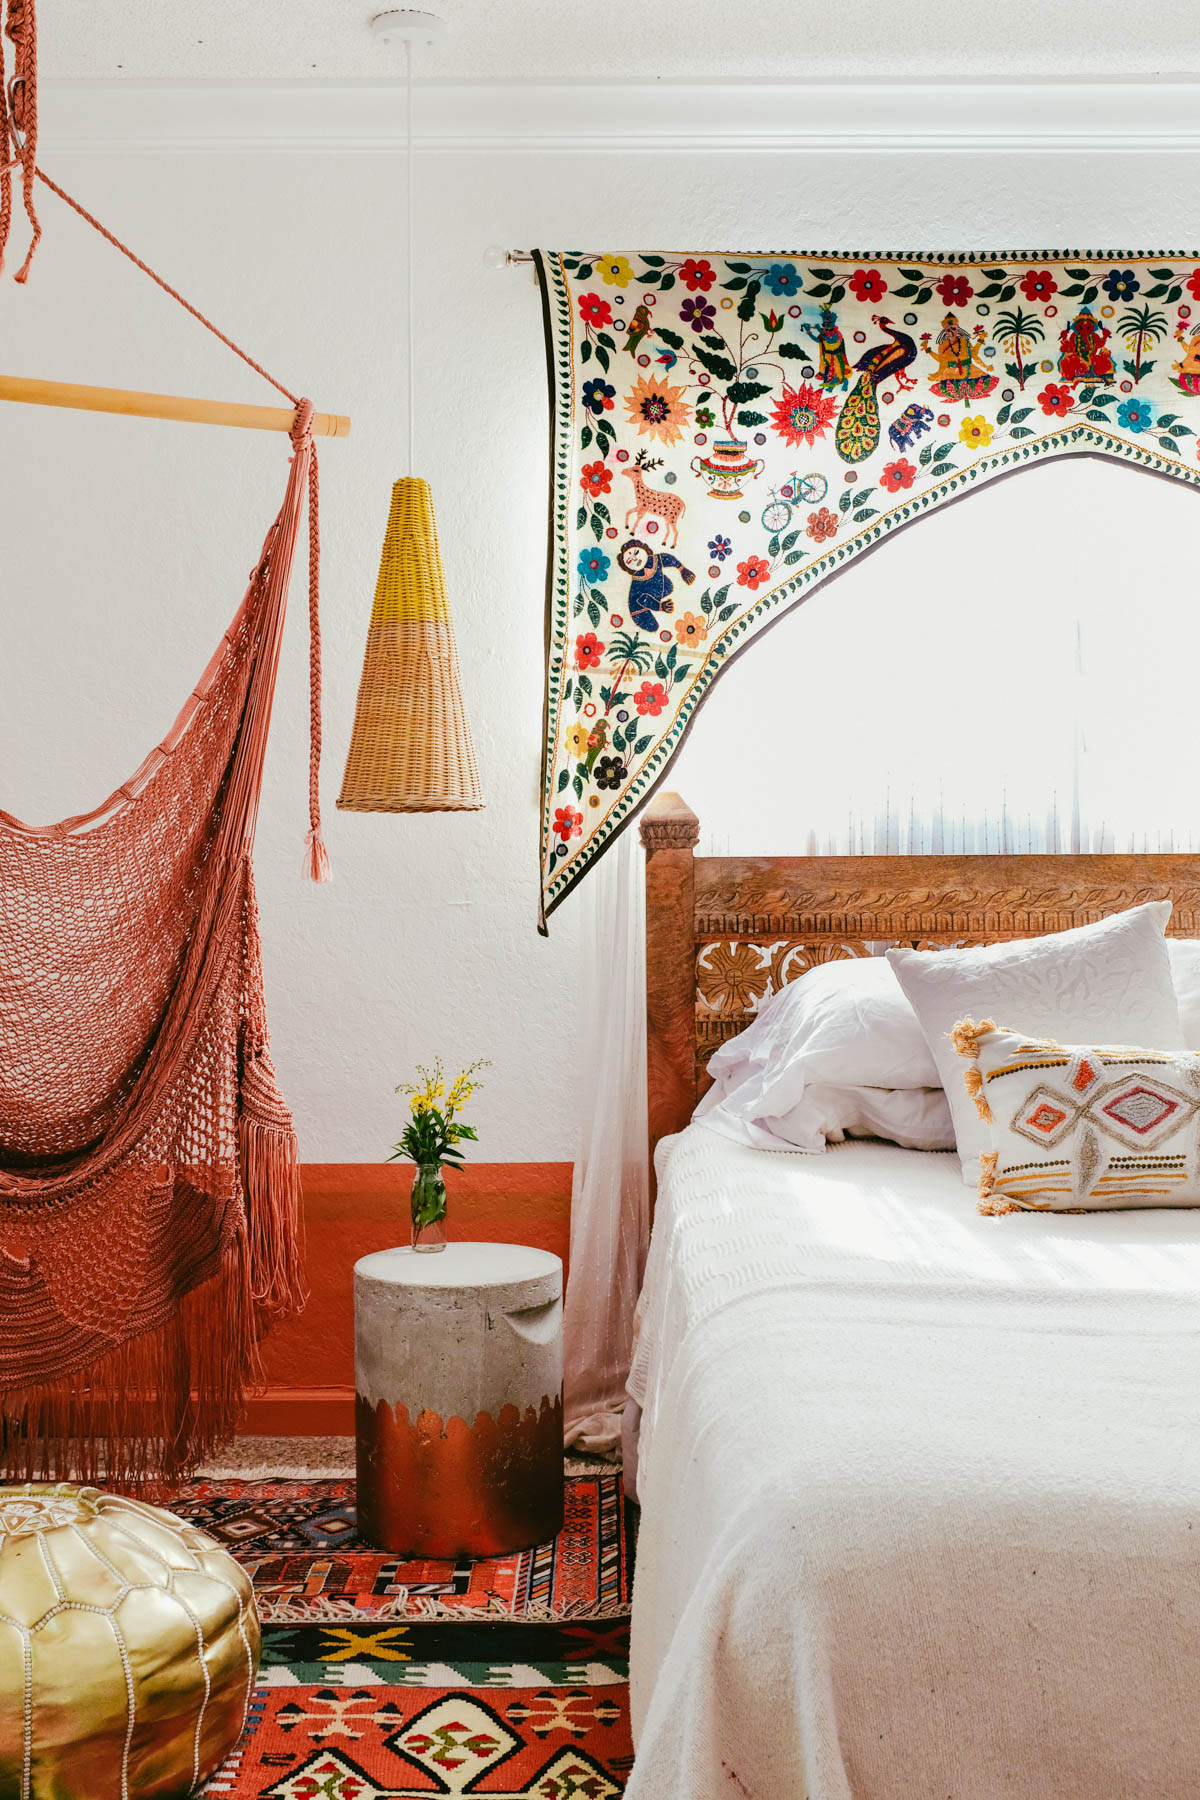 Our Updated Bedroom Tour